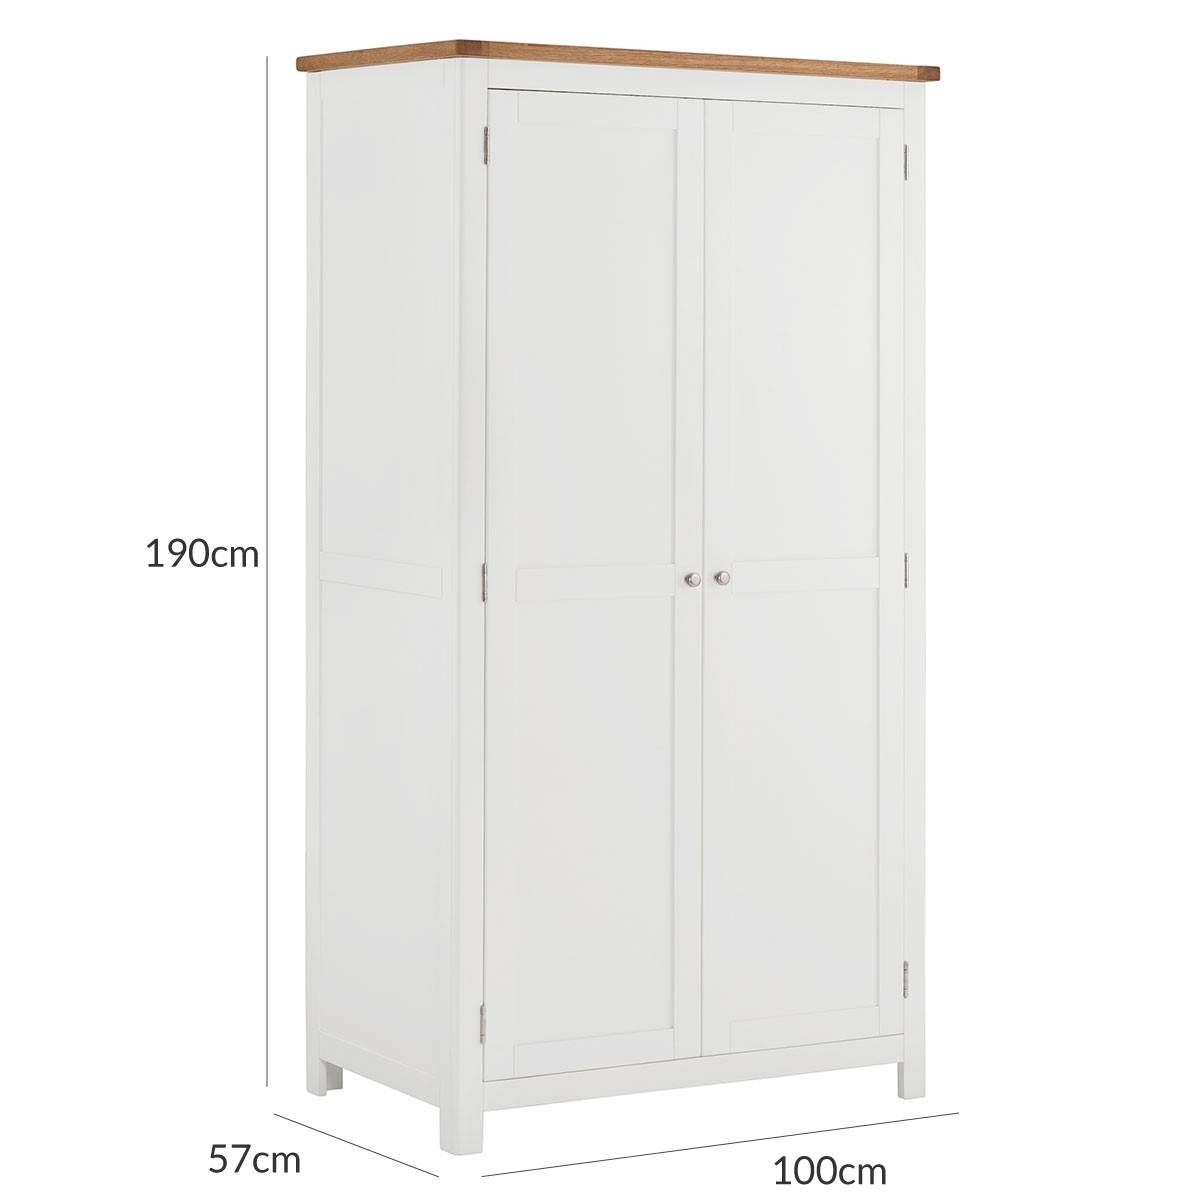 Hutch® - Portsmouth White Painted Double Wardrobe Full Hanging 2 Door throughout White Painted Wardrobes (Image 4 of 15)